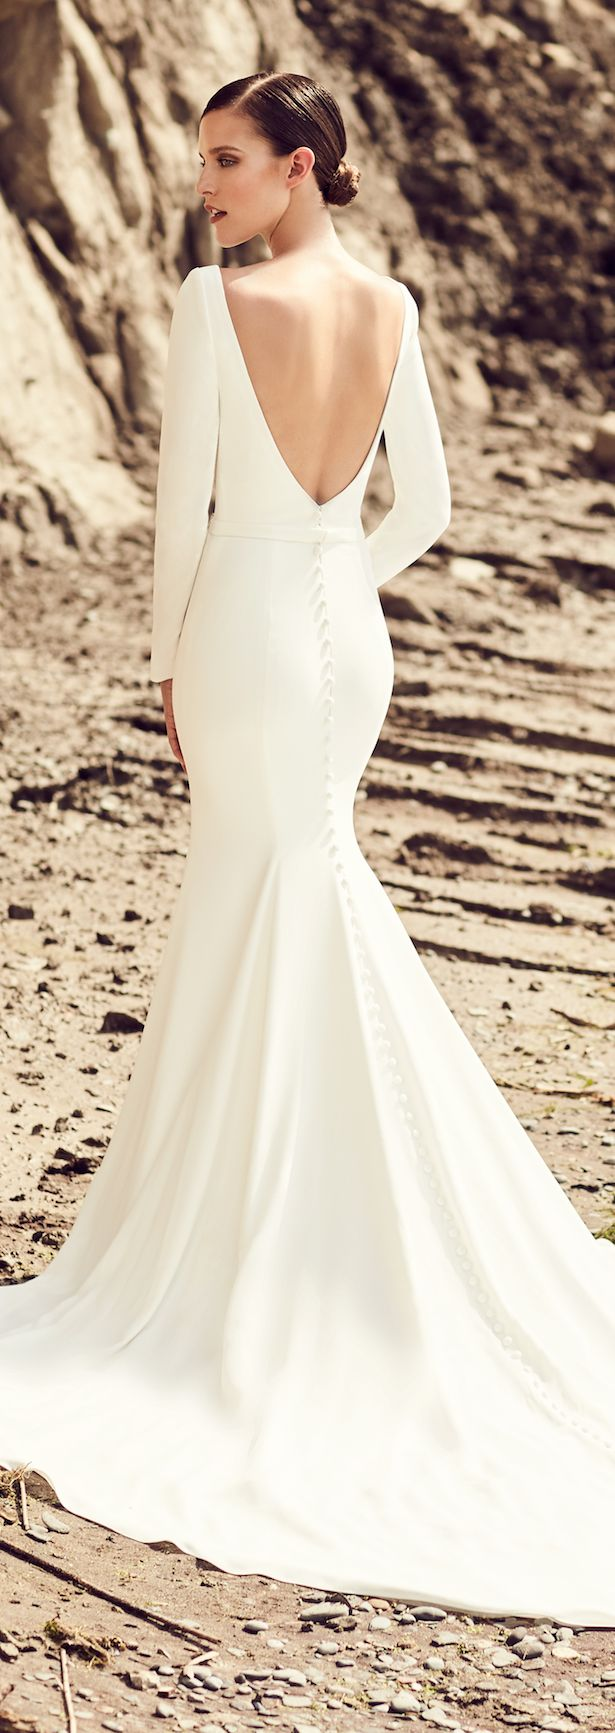 Mikaella bridal spring wedding dress collection i thee wed